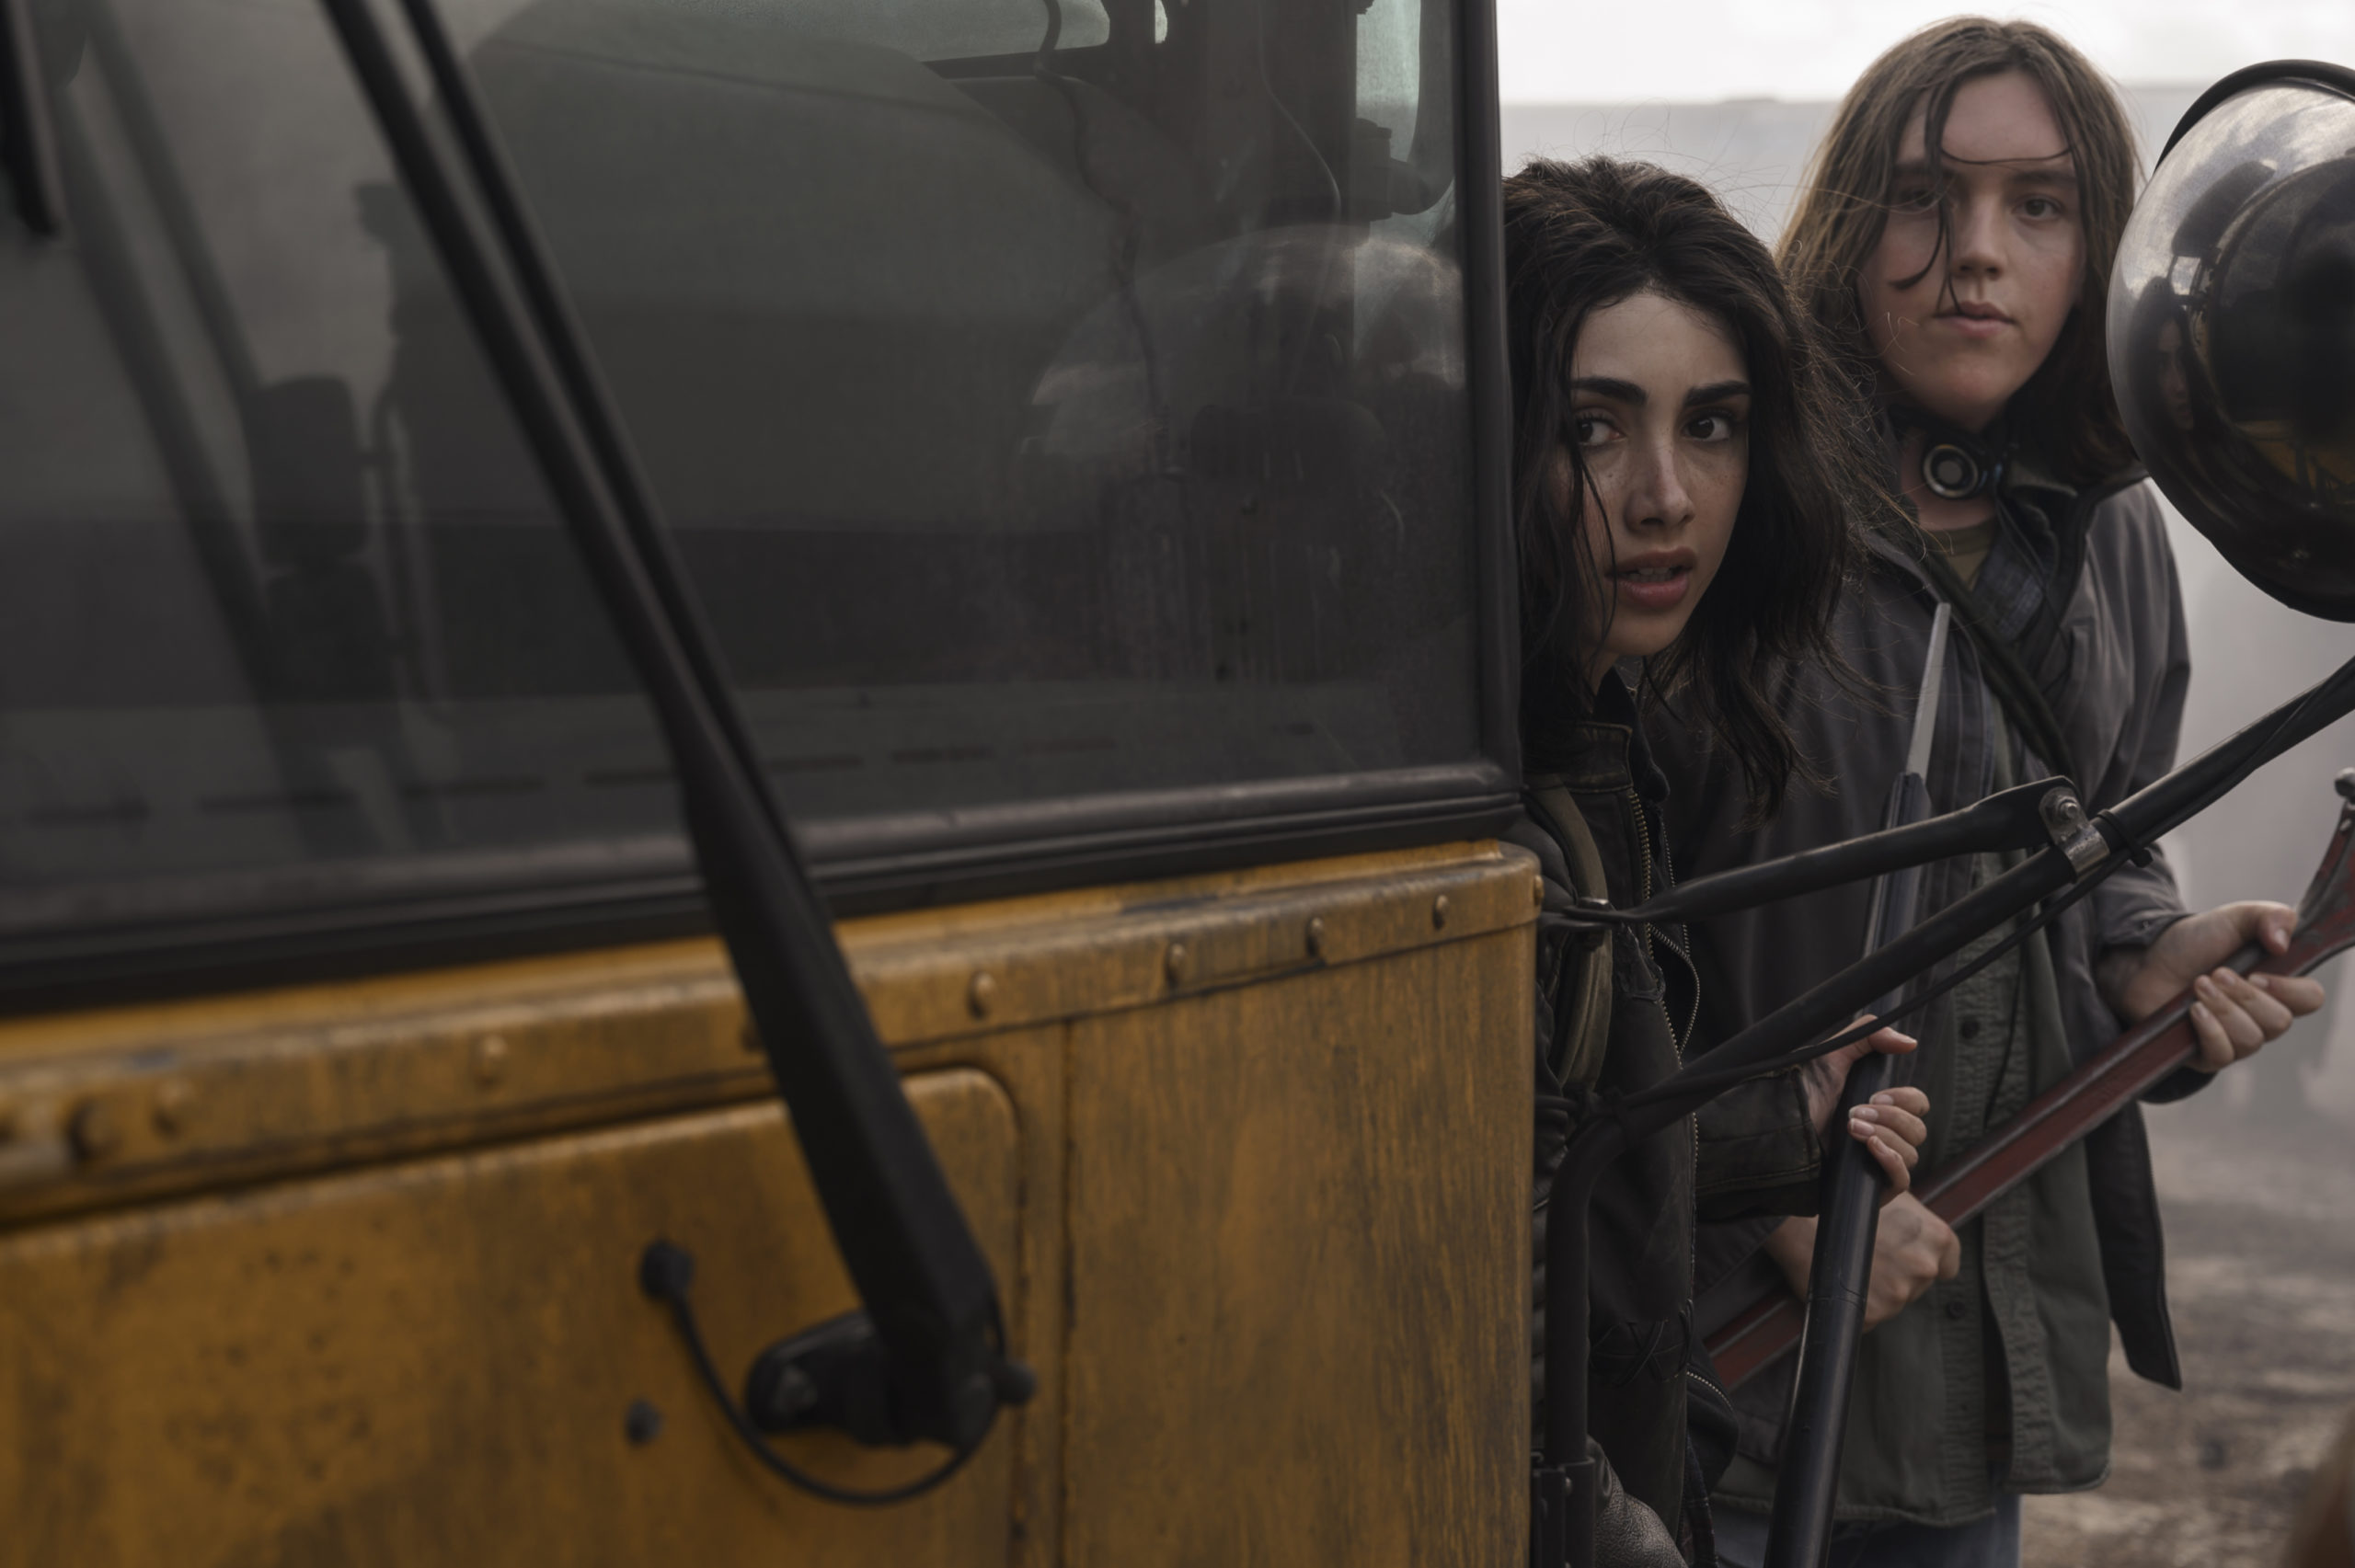 New photos from set of The Walking Dead spin-off series revealed